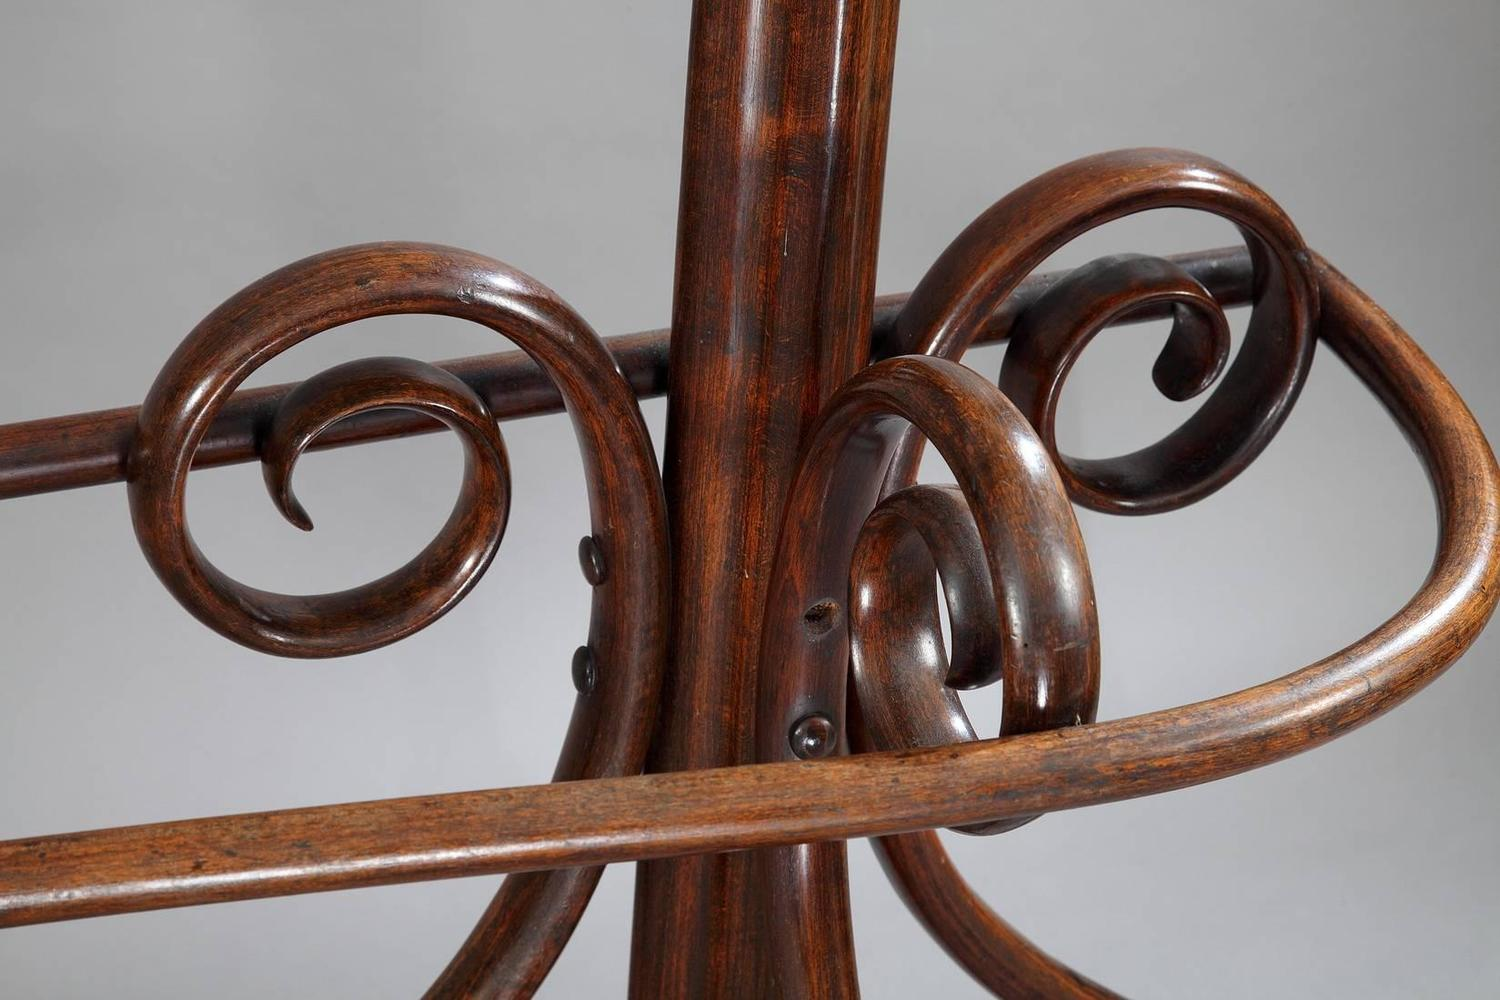 late 19th century thonet double coat rack art nouveau period for sale at 1stdibs. Black Bedroom Furniture Sets. Home Design Ideas